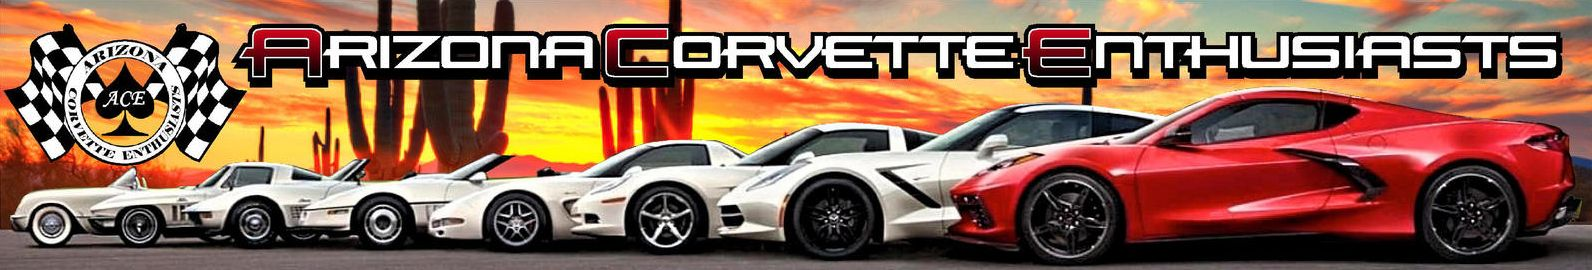 Arizona Corvette Enthusiasts